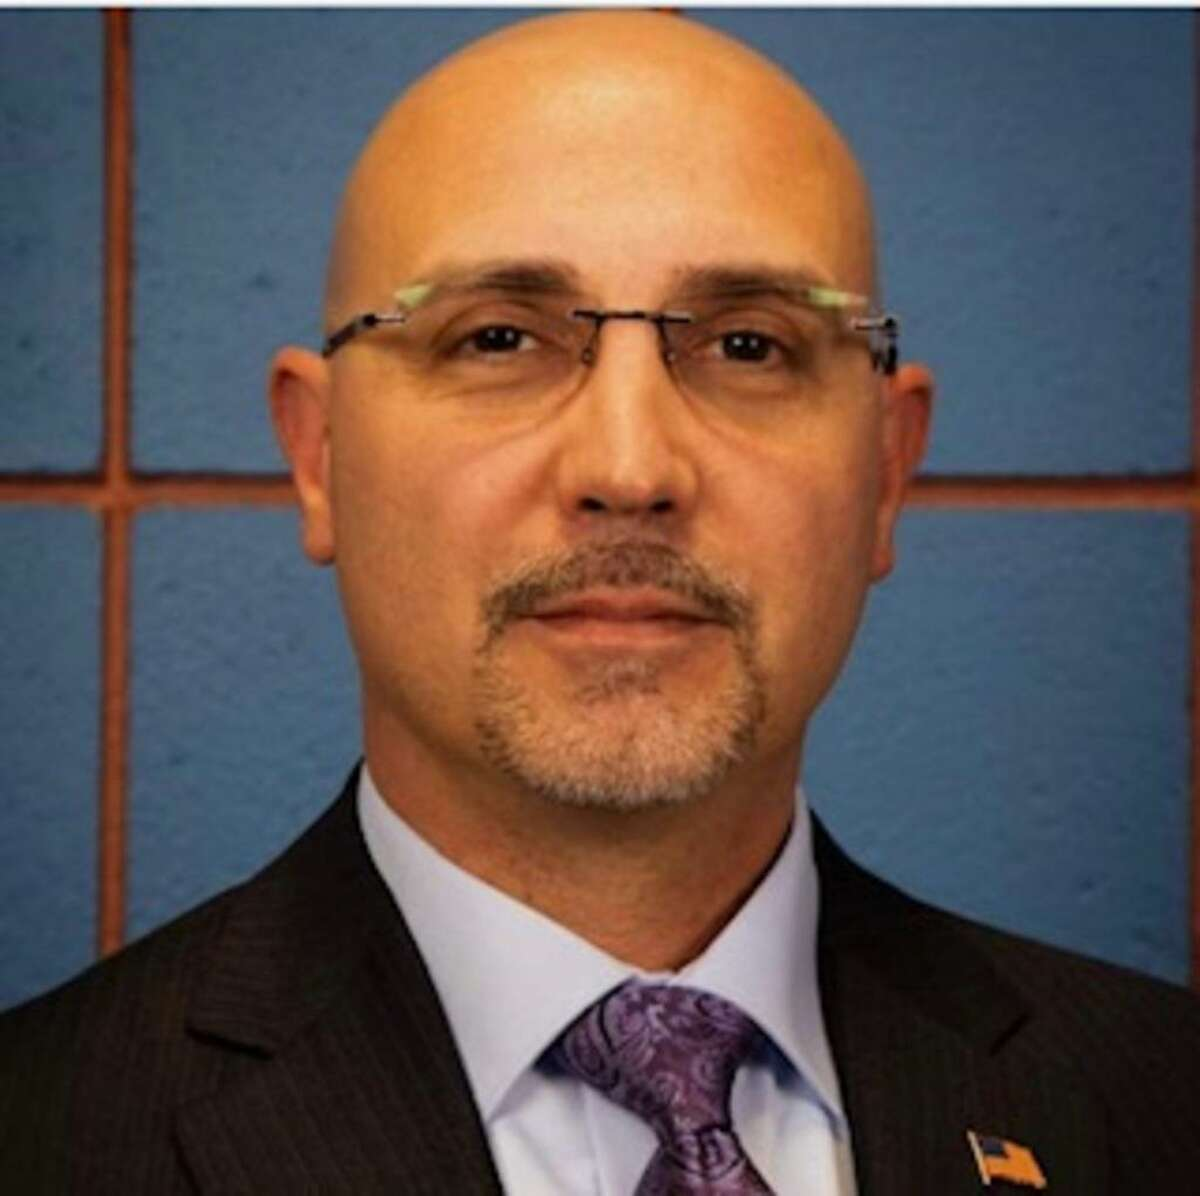 Anthony Gennaro Republican candidate for 100th District